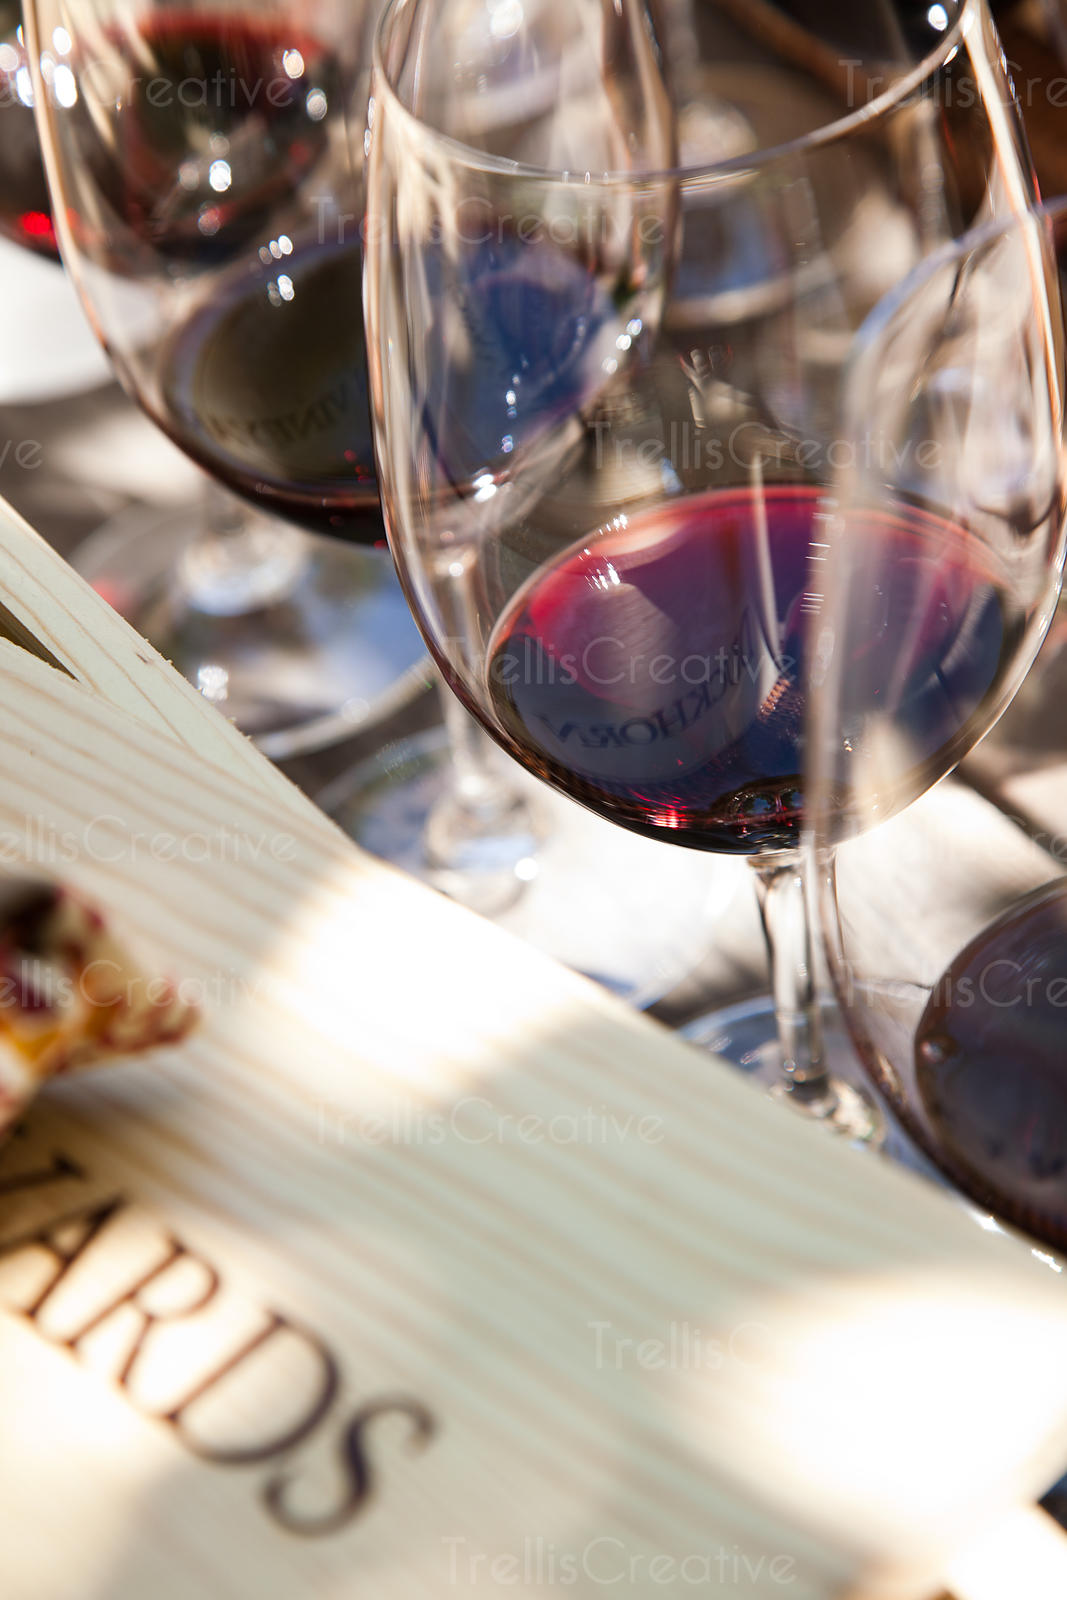 Glasses of red wine at a winery tasting event